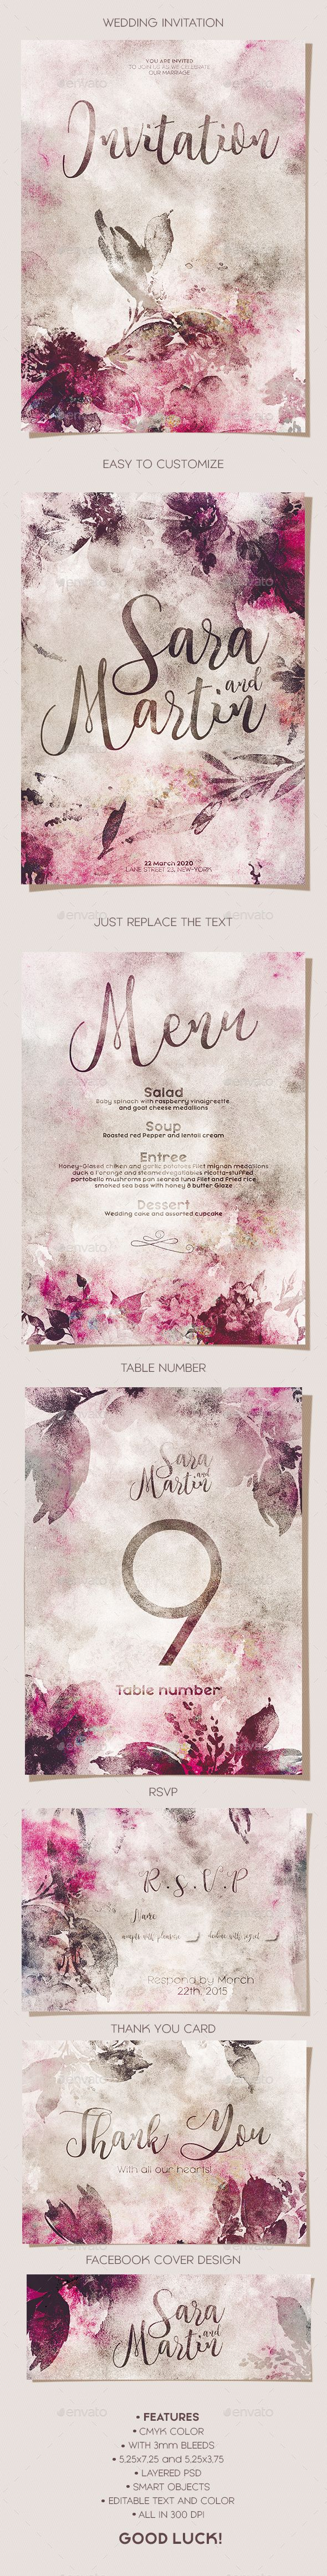 Wedding Invitation Pinterest Font logo Graphics and Fonts